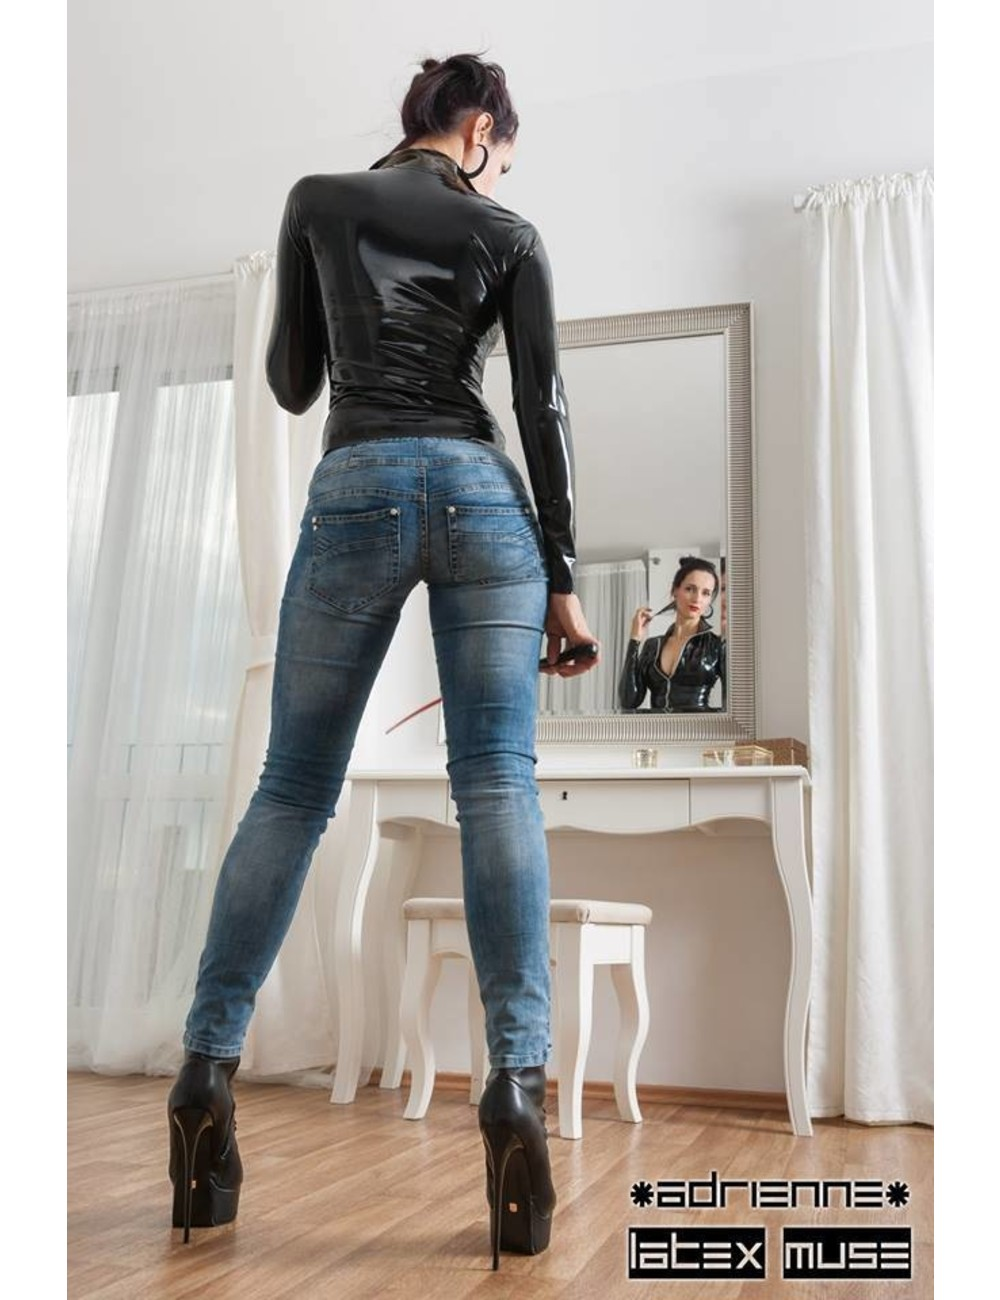 Giaro Miss Adrienne in Giaro lace-up boots